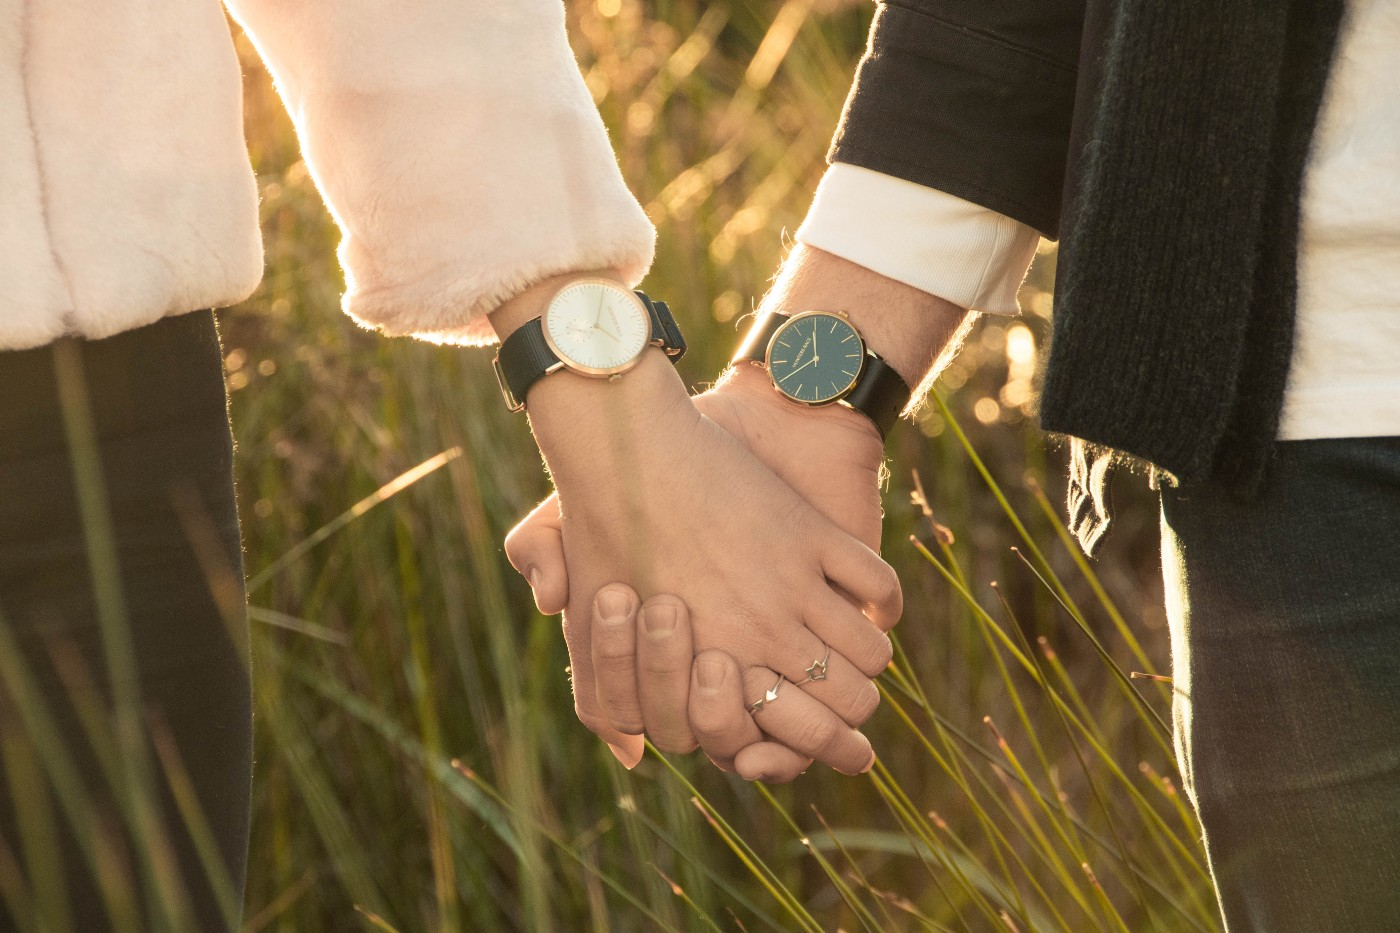 Two people holding hands in a field of grass, both wearing watches on their wrists.